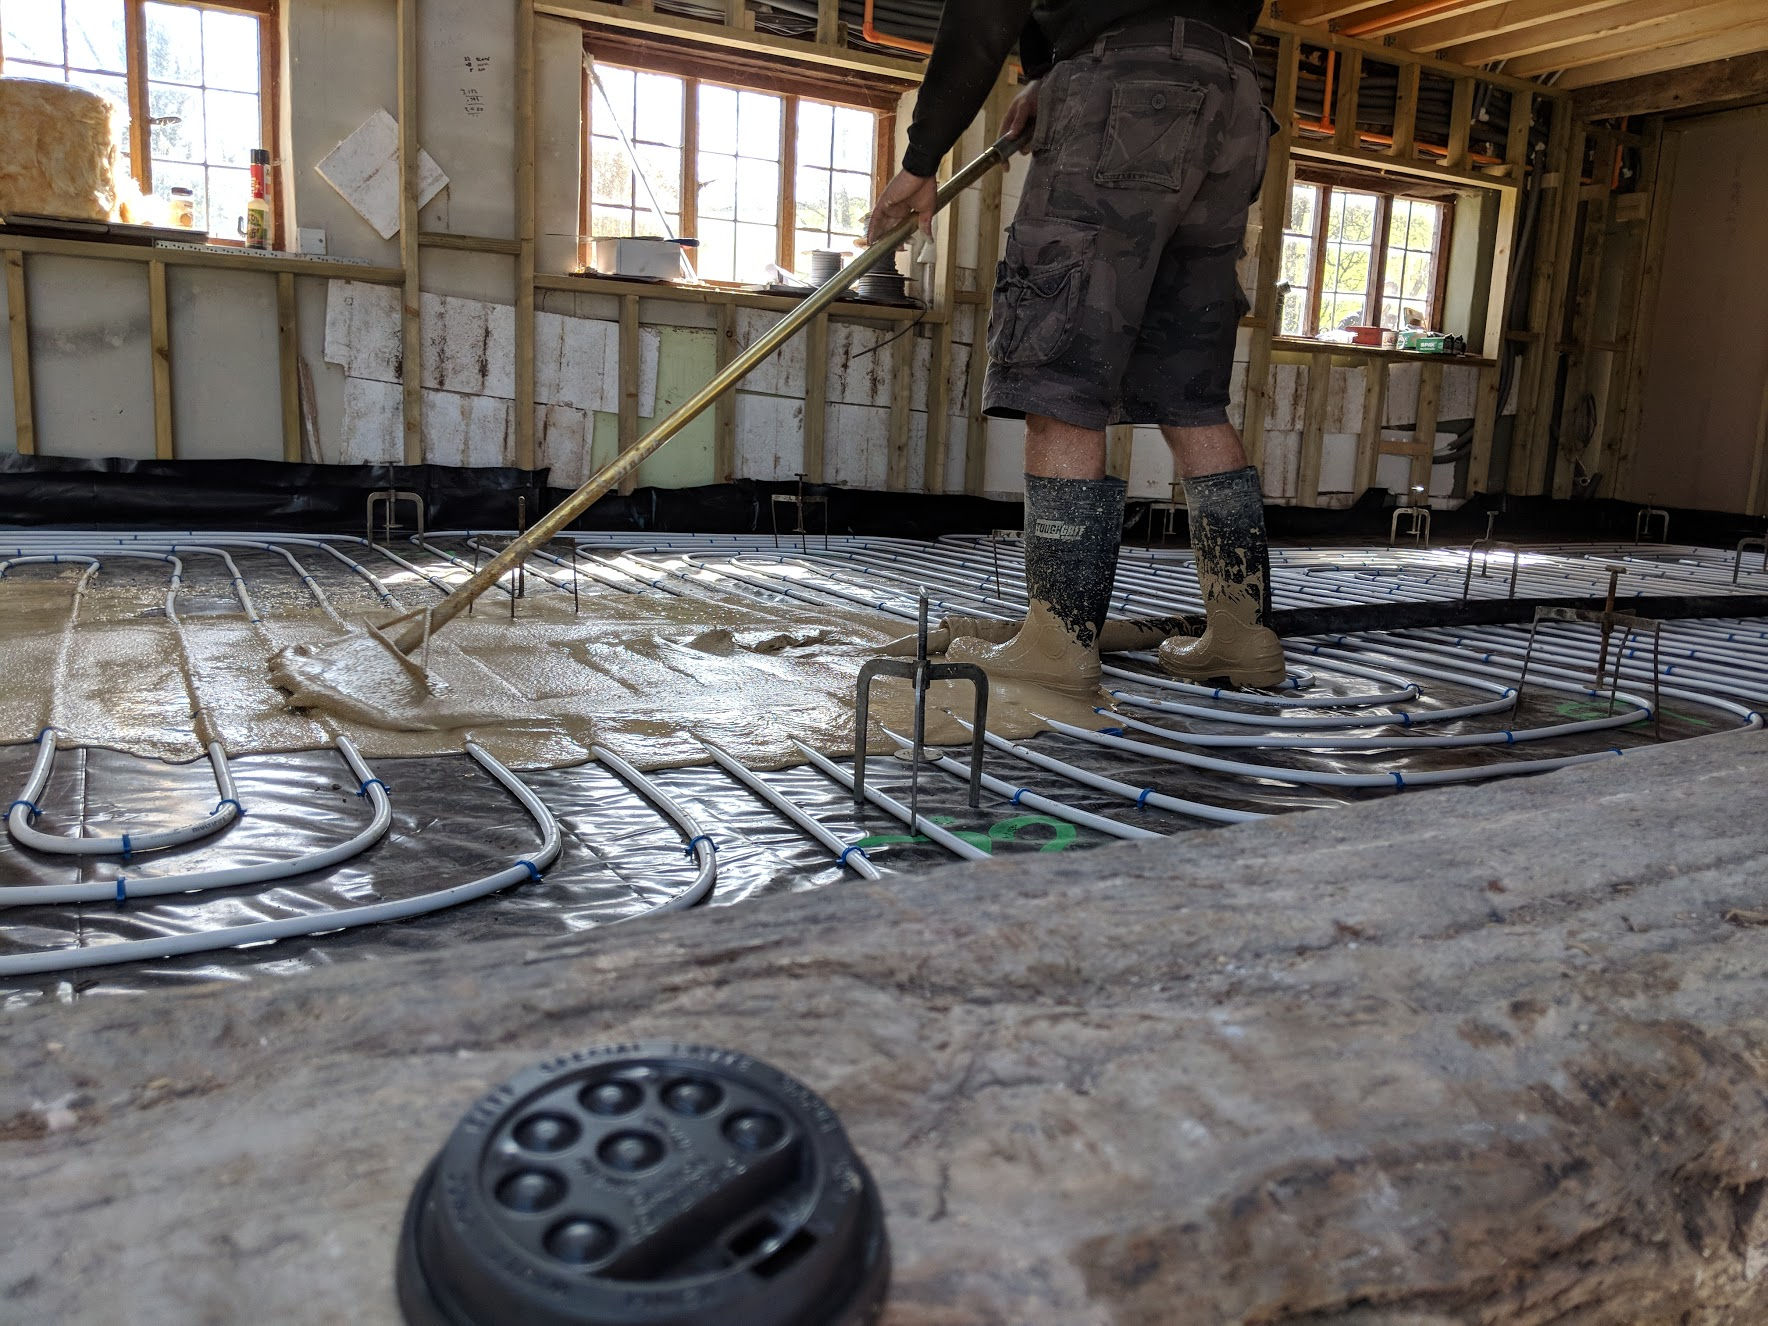 Over 100 square metres of underfloor heating